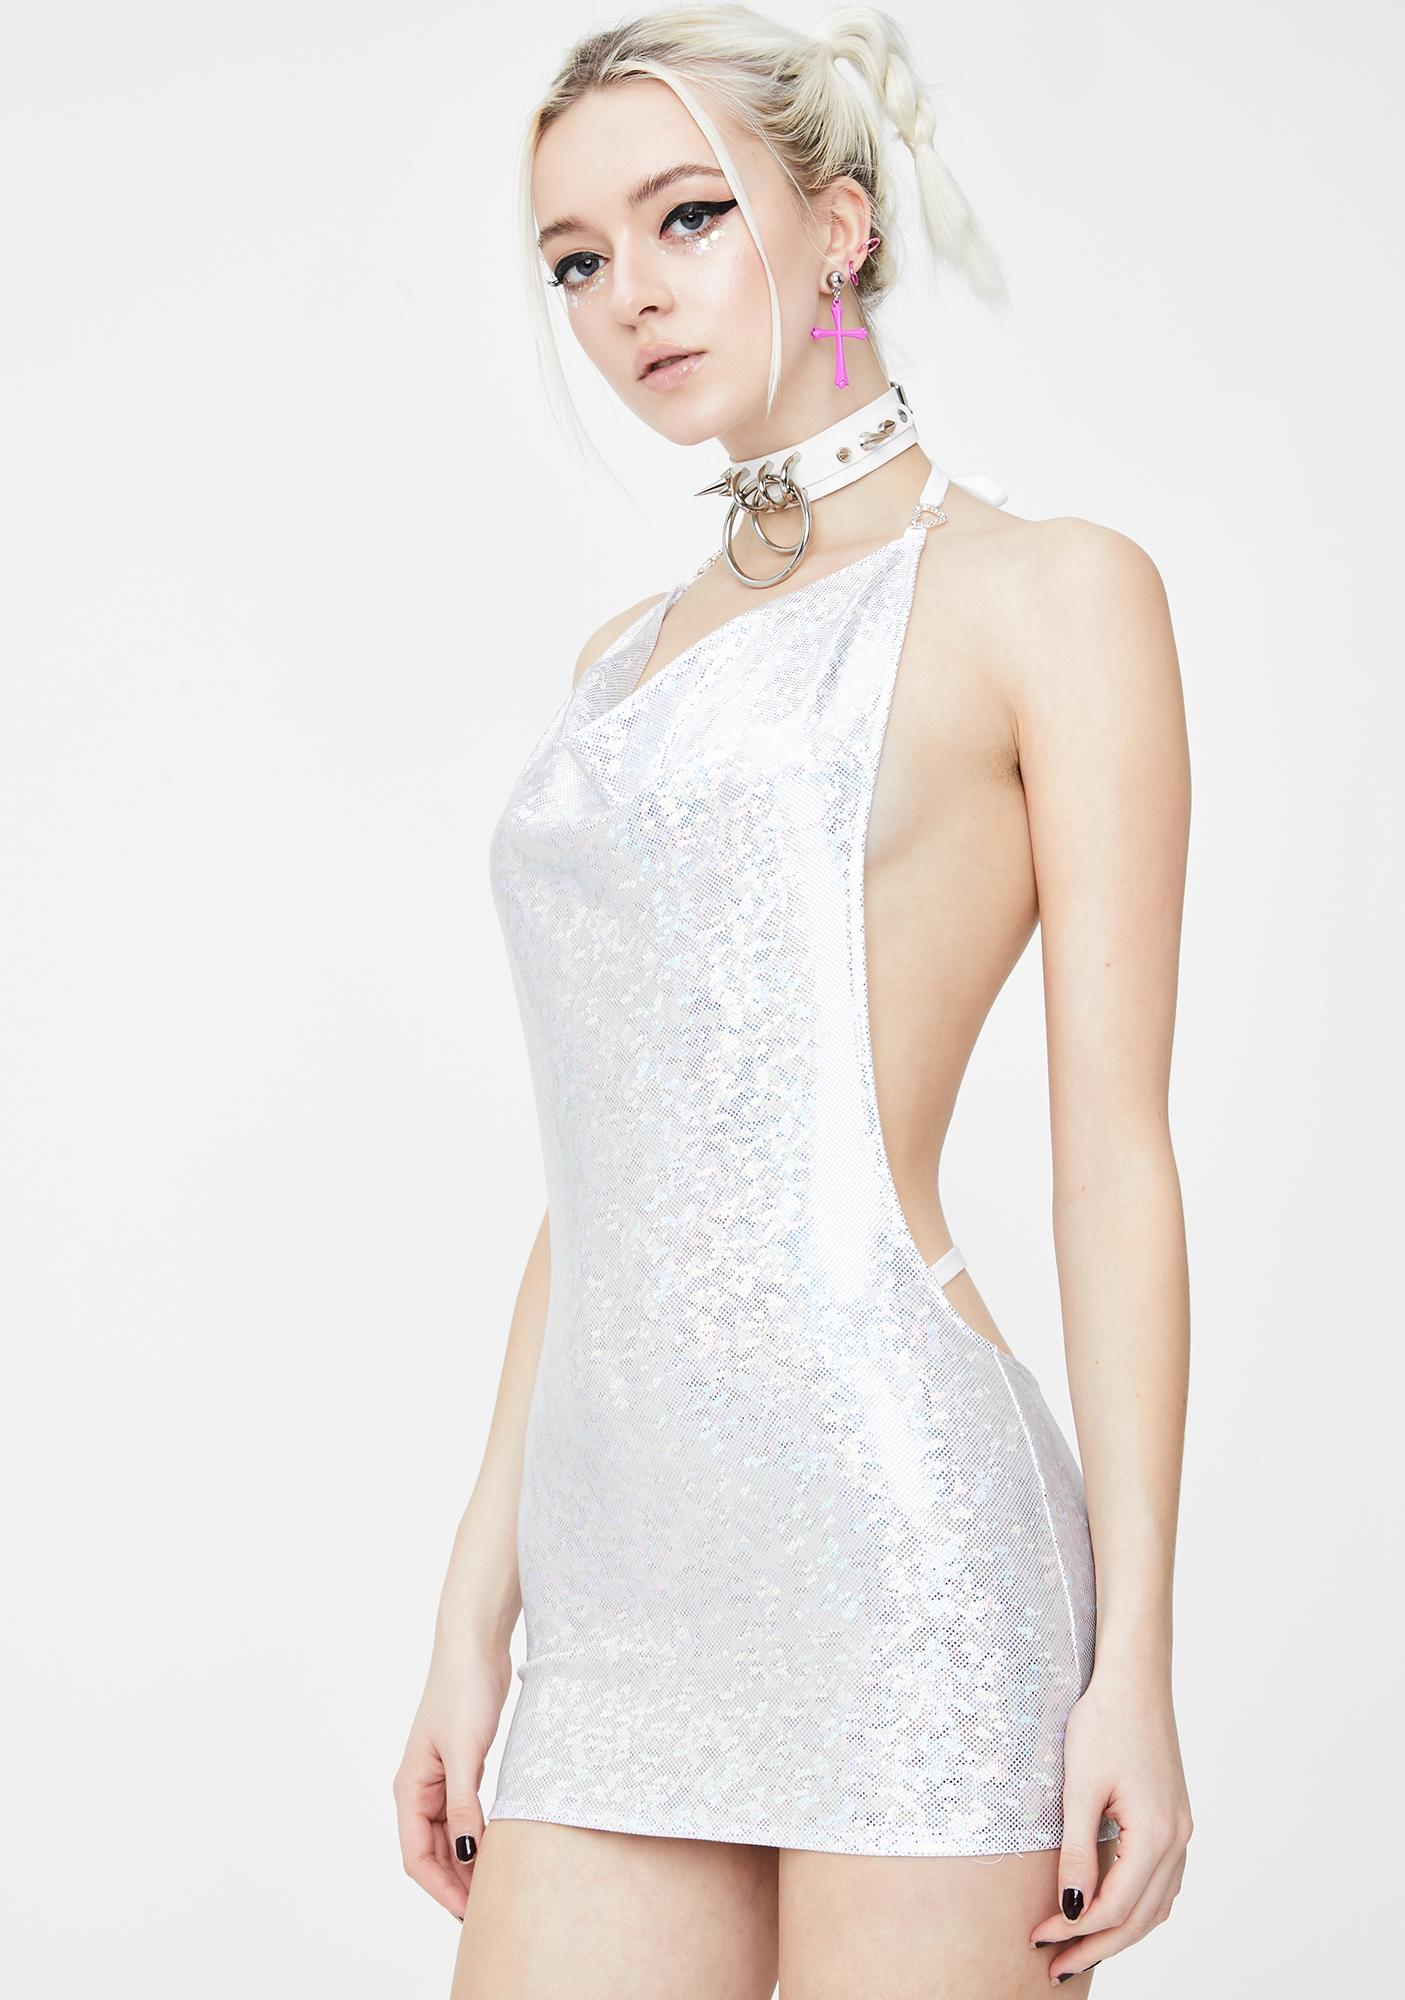 Shay Kawaii Mermaid Holographic Mini Dress